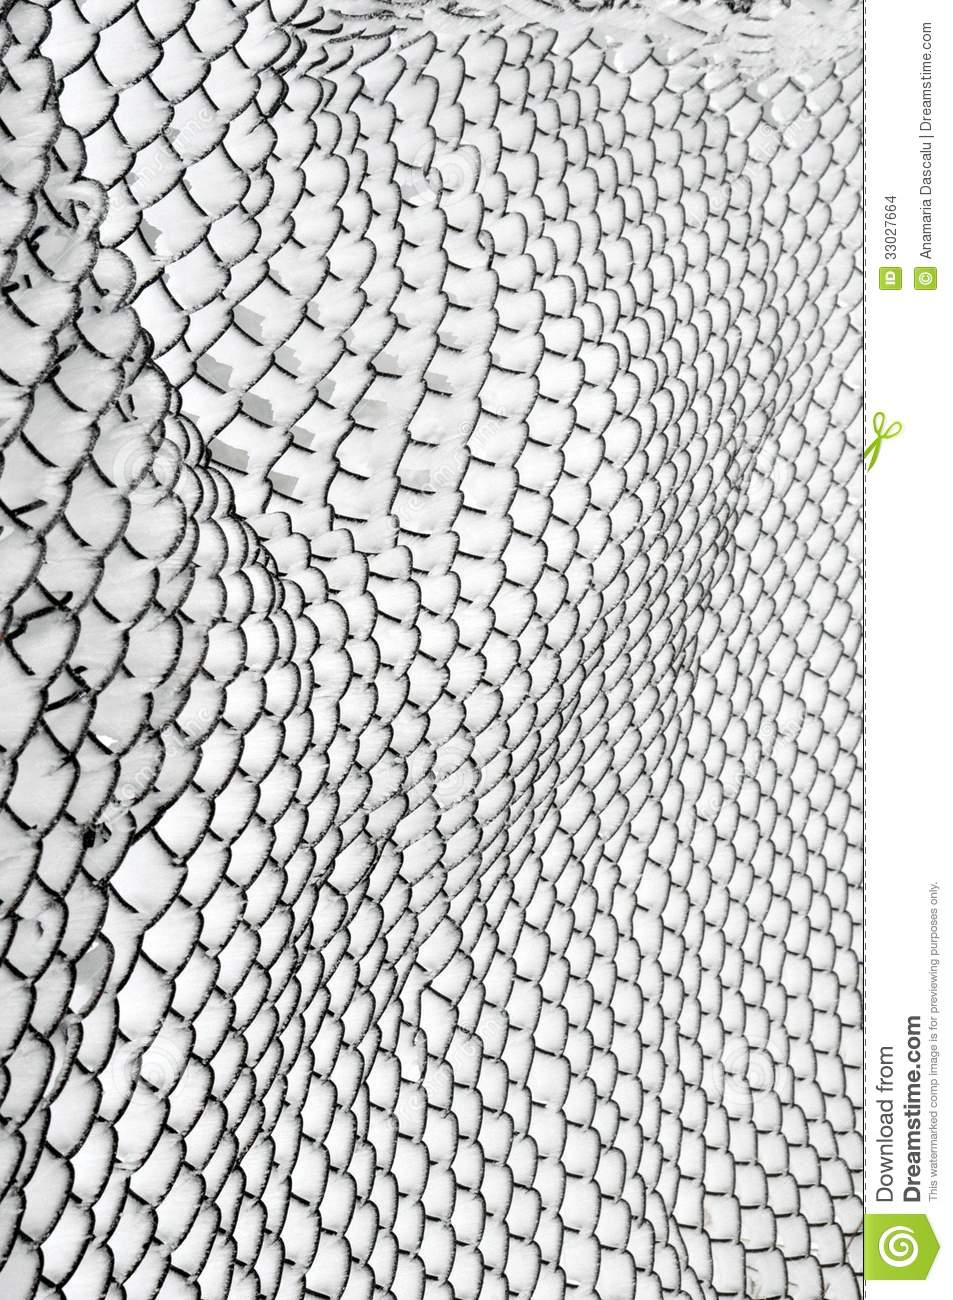 Snow Covered Chain Link Fence Stock Photo